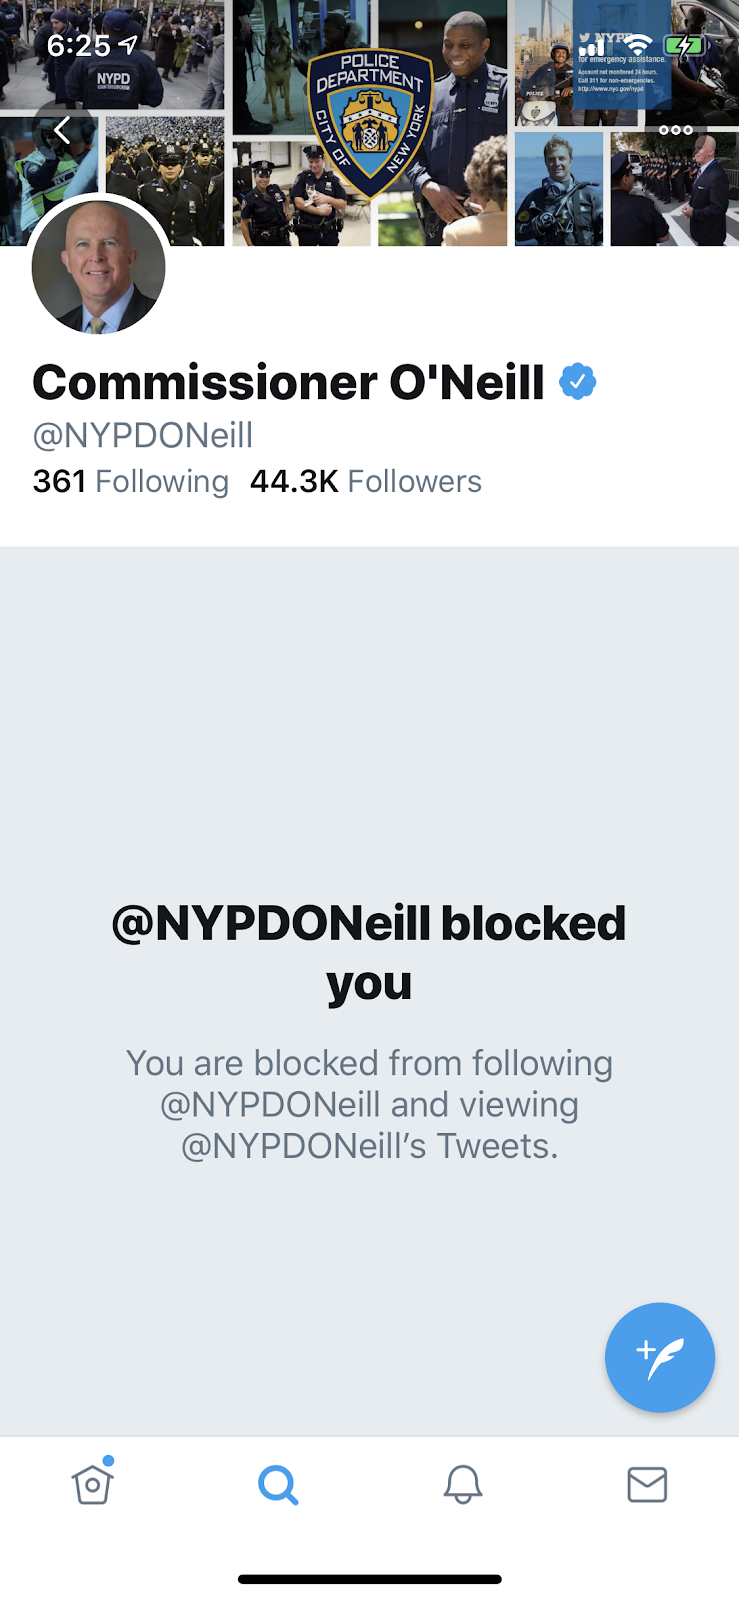 NYPD Police Commissioner Blocks Me a Victim Reporting Crime on Twitter!